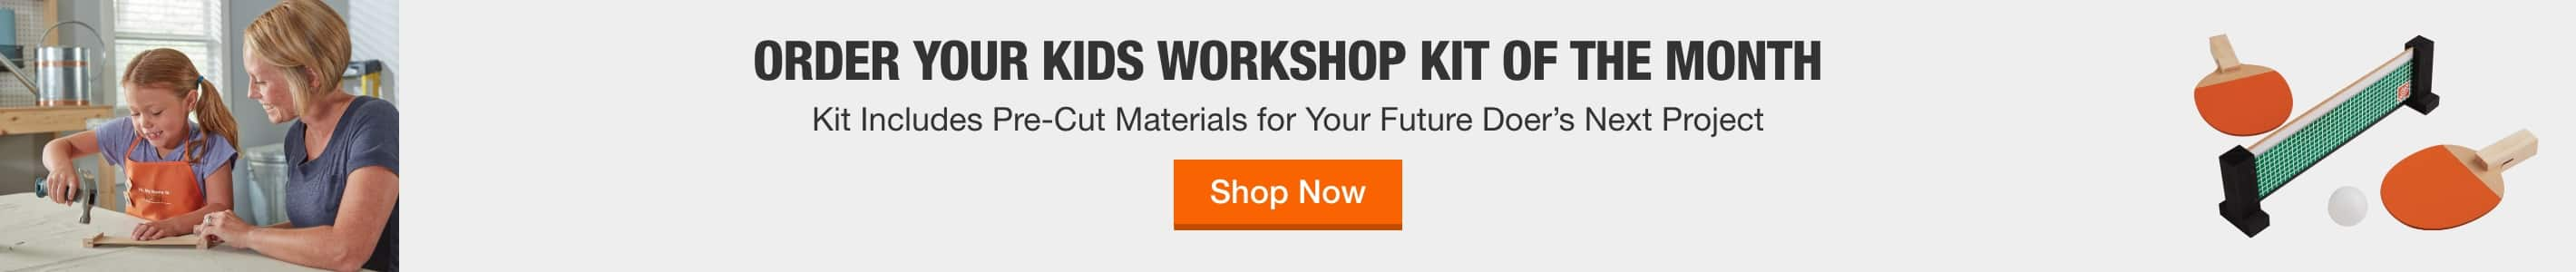 ORDER YOUR KIDS WORKSHOP KIT OF THE MONTH - Kit includes pre-cut materials for your future doer's next project